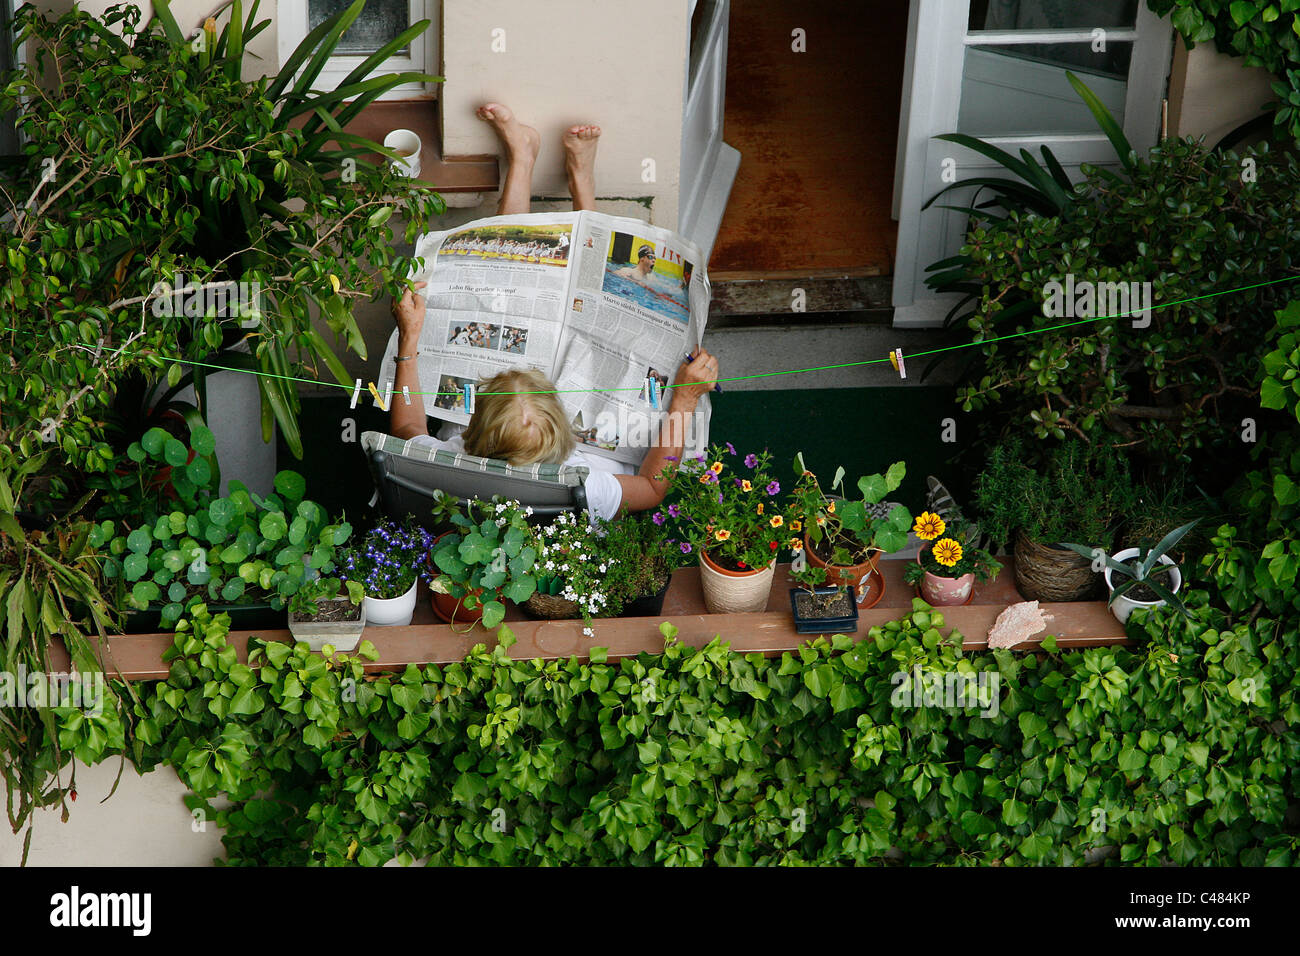 An elderly German woman sitting relaxed at her balcony reading newspaper surrounded by flower pots in Leipzig, Germany - Stock Image